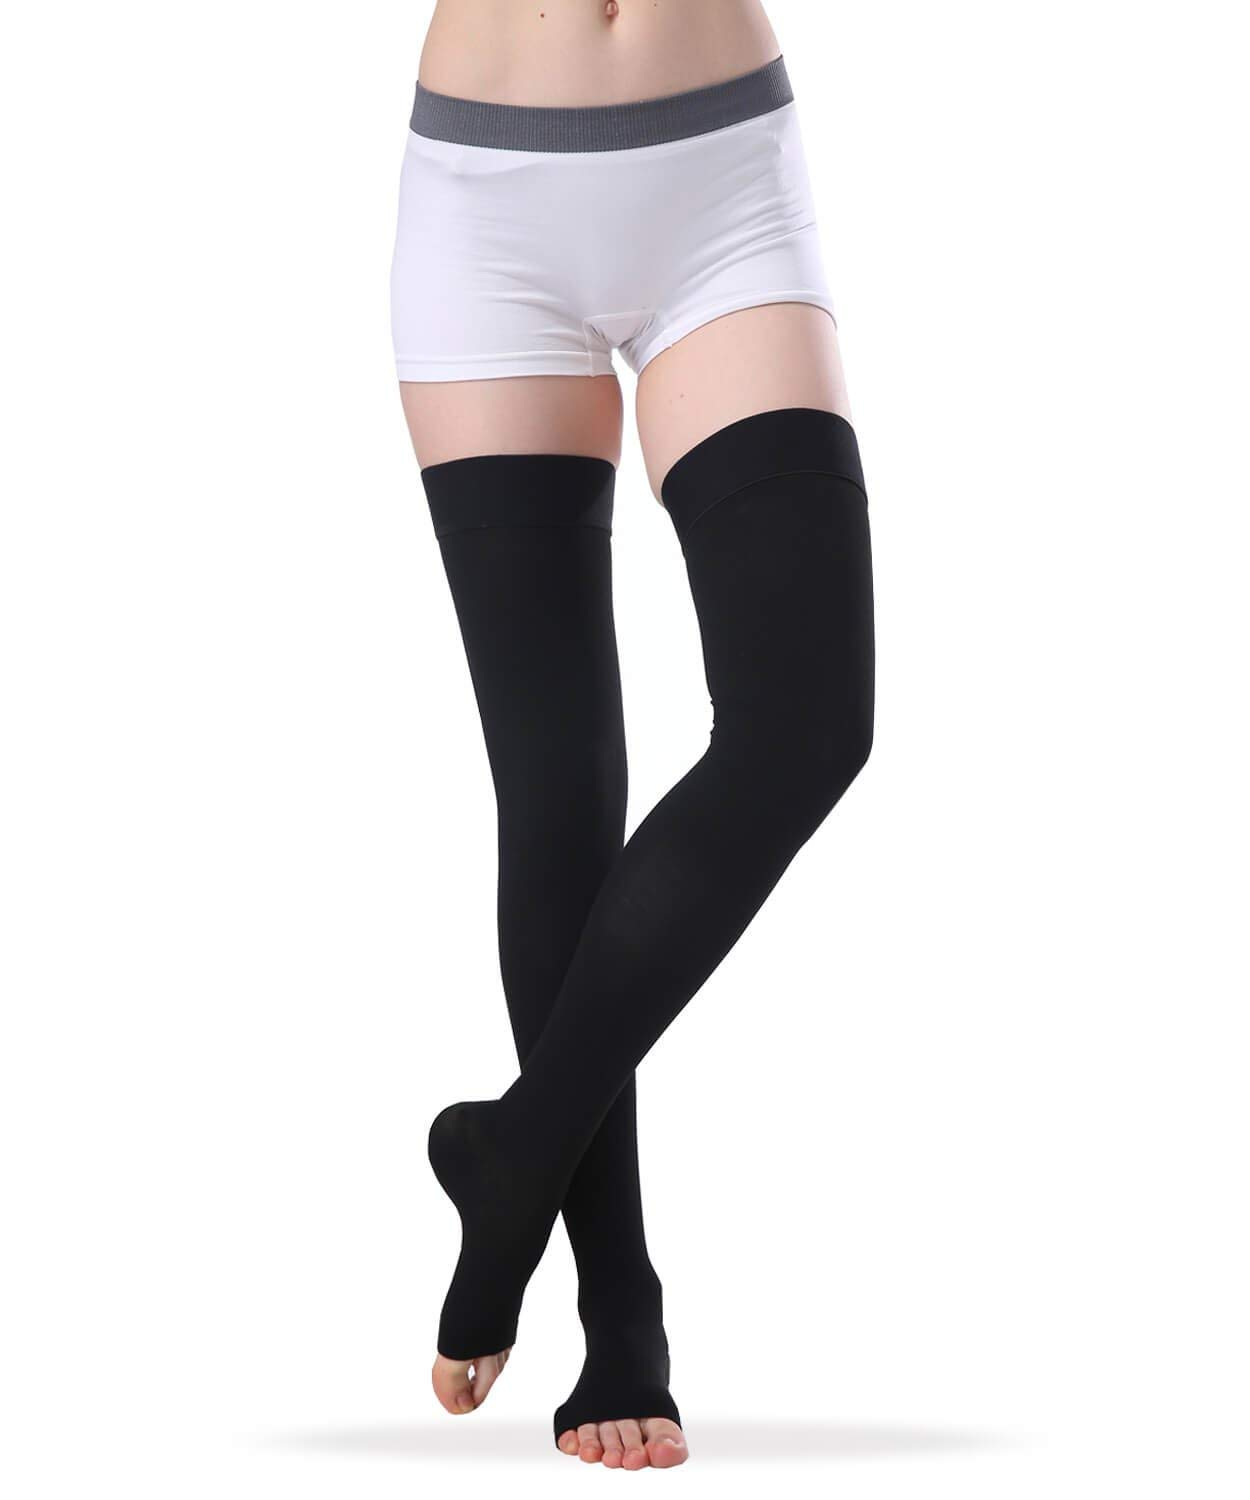 8172f00677e Get Quotations · SWOLF Women s Thigh High Open Toe Compression Stockings